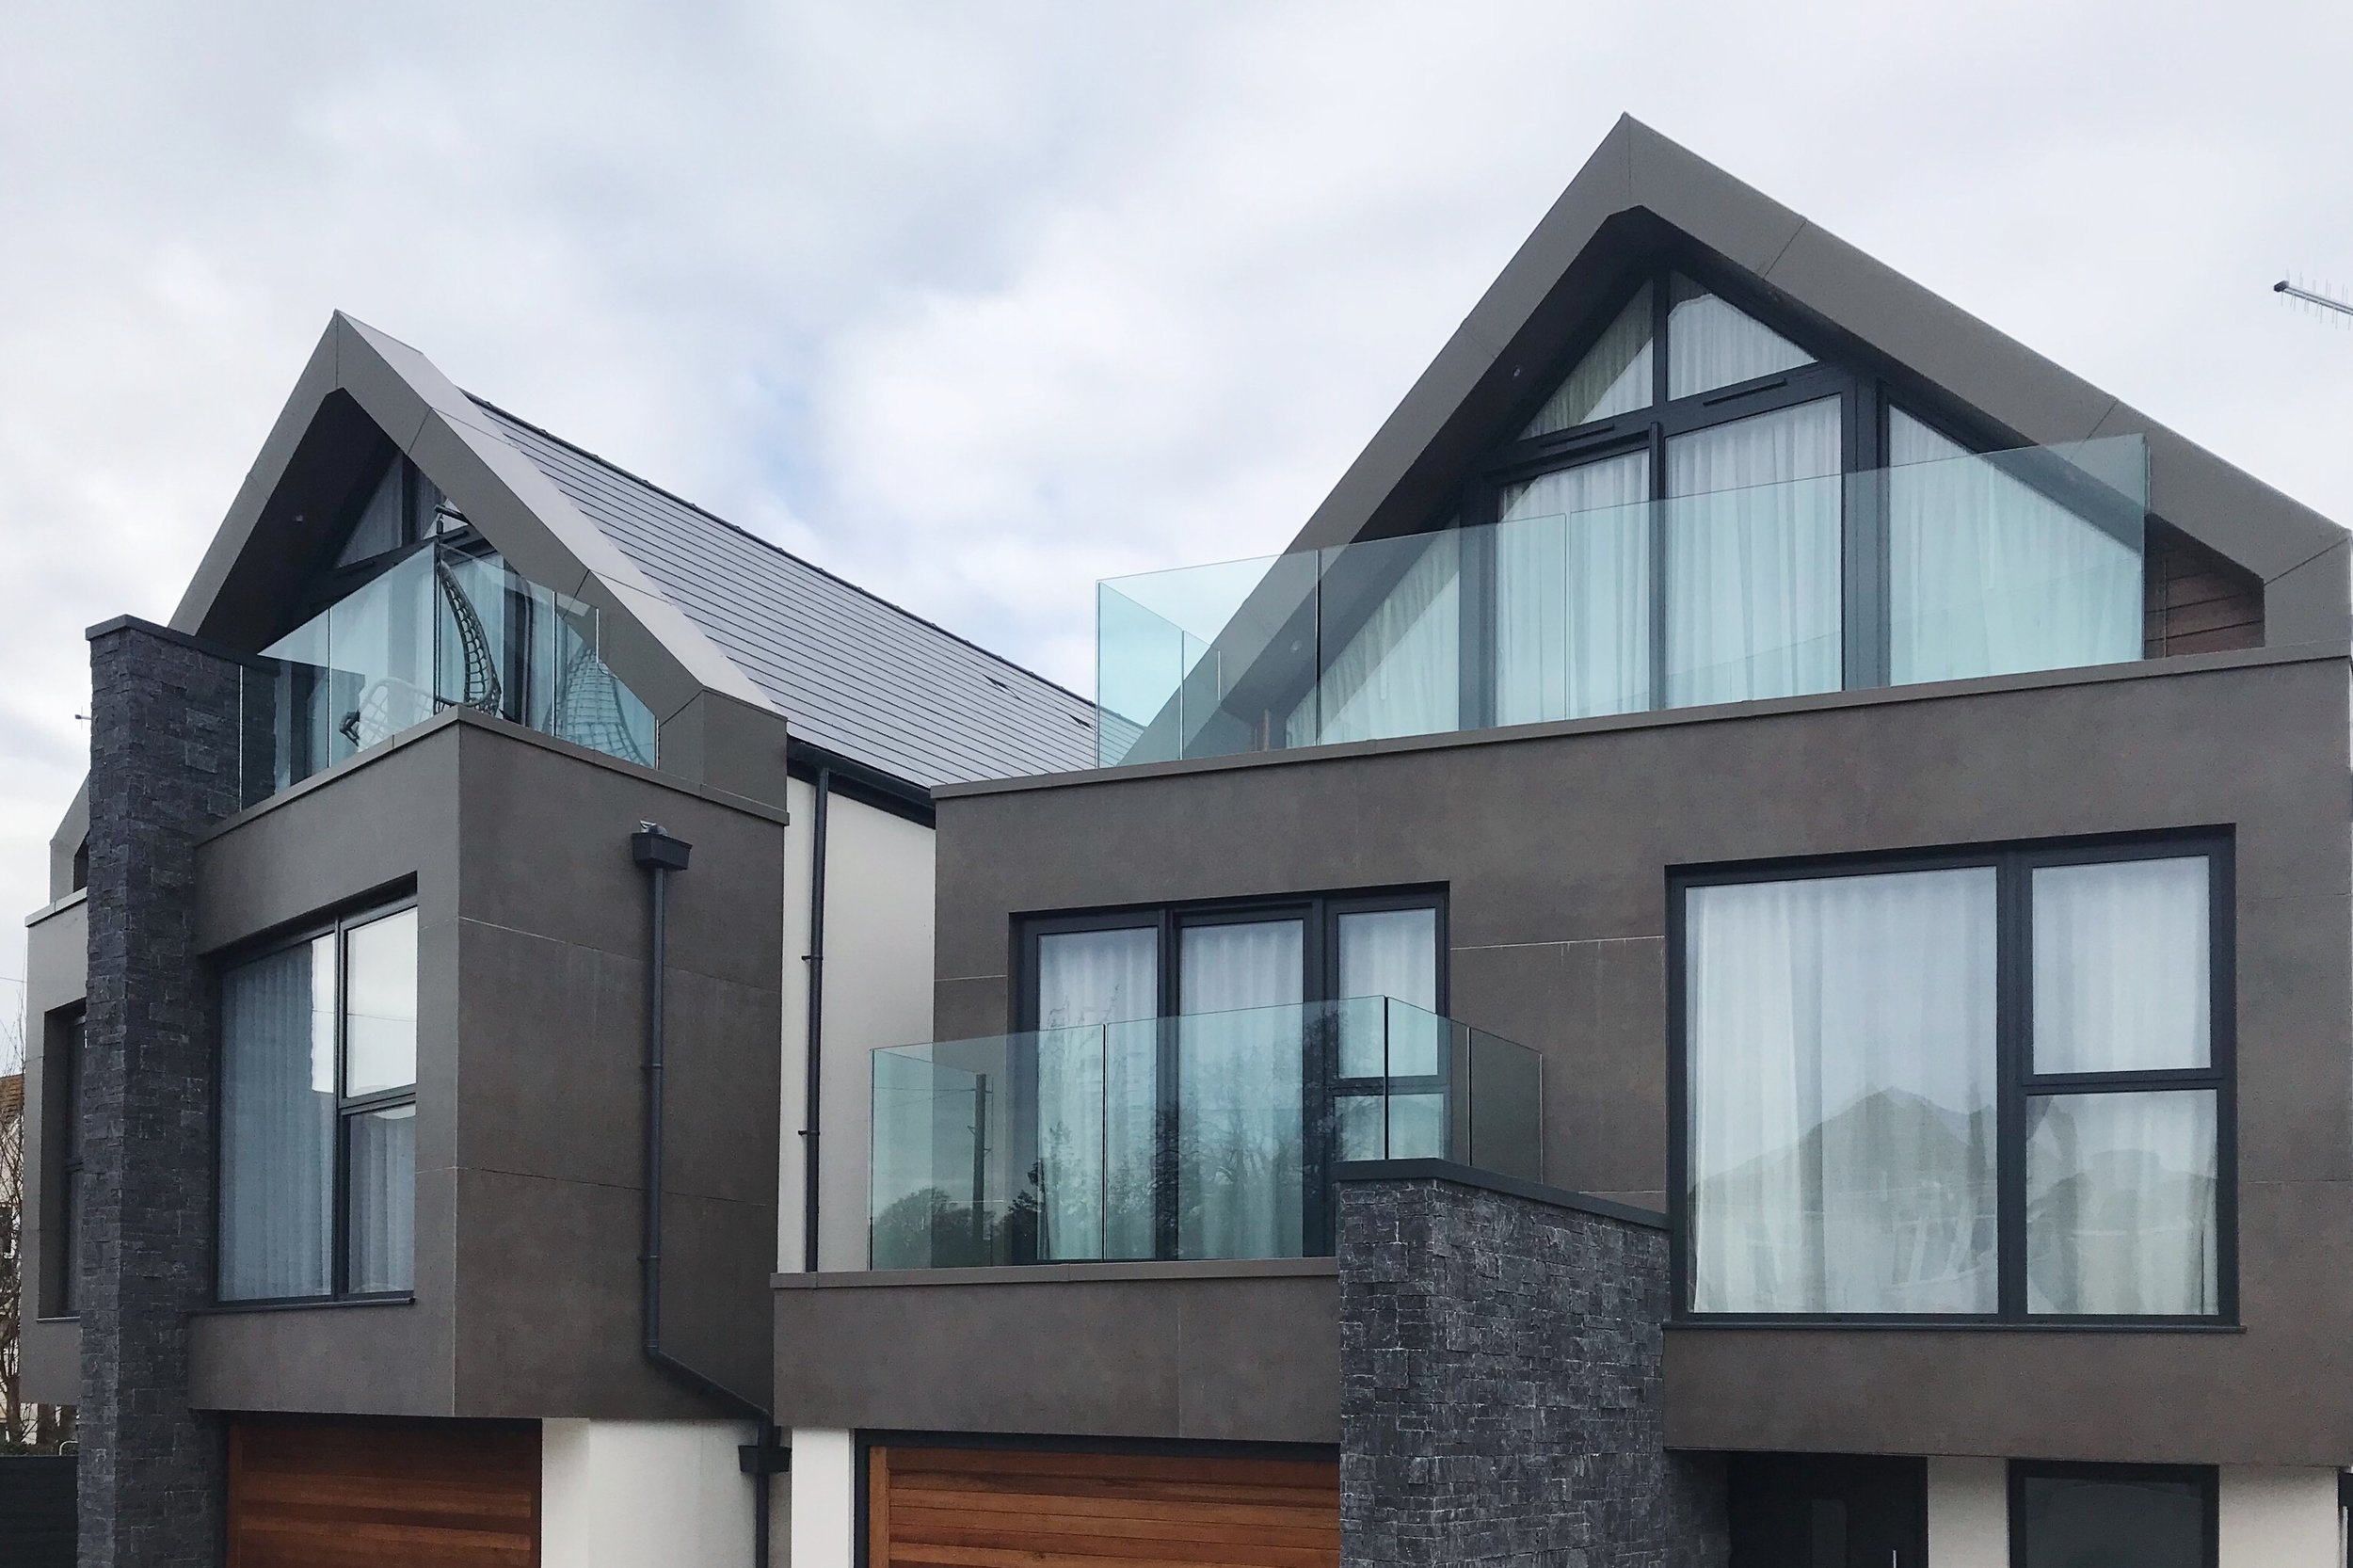 ARCHITECTURAL CLADDING - Being so close to the sea, rendered buildings look great for a limited time. Porcelain does not discolour, is non porous and has excellent thermal properties. This image is taken 12 months after the Floor Gres Industrial large format has been installed on the front and rear elevations of these two properties. It is possible to have metal, concrete, stone and marble effect porcelain that will look beautiful throughout time.Tile featured: Floor Gres Industrial Moka